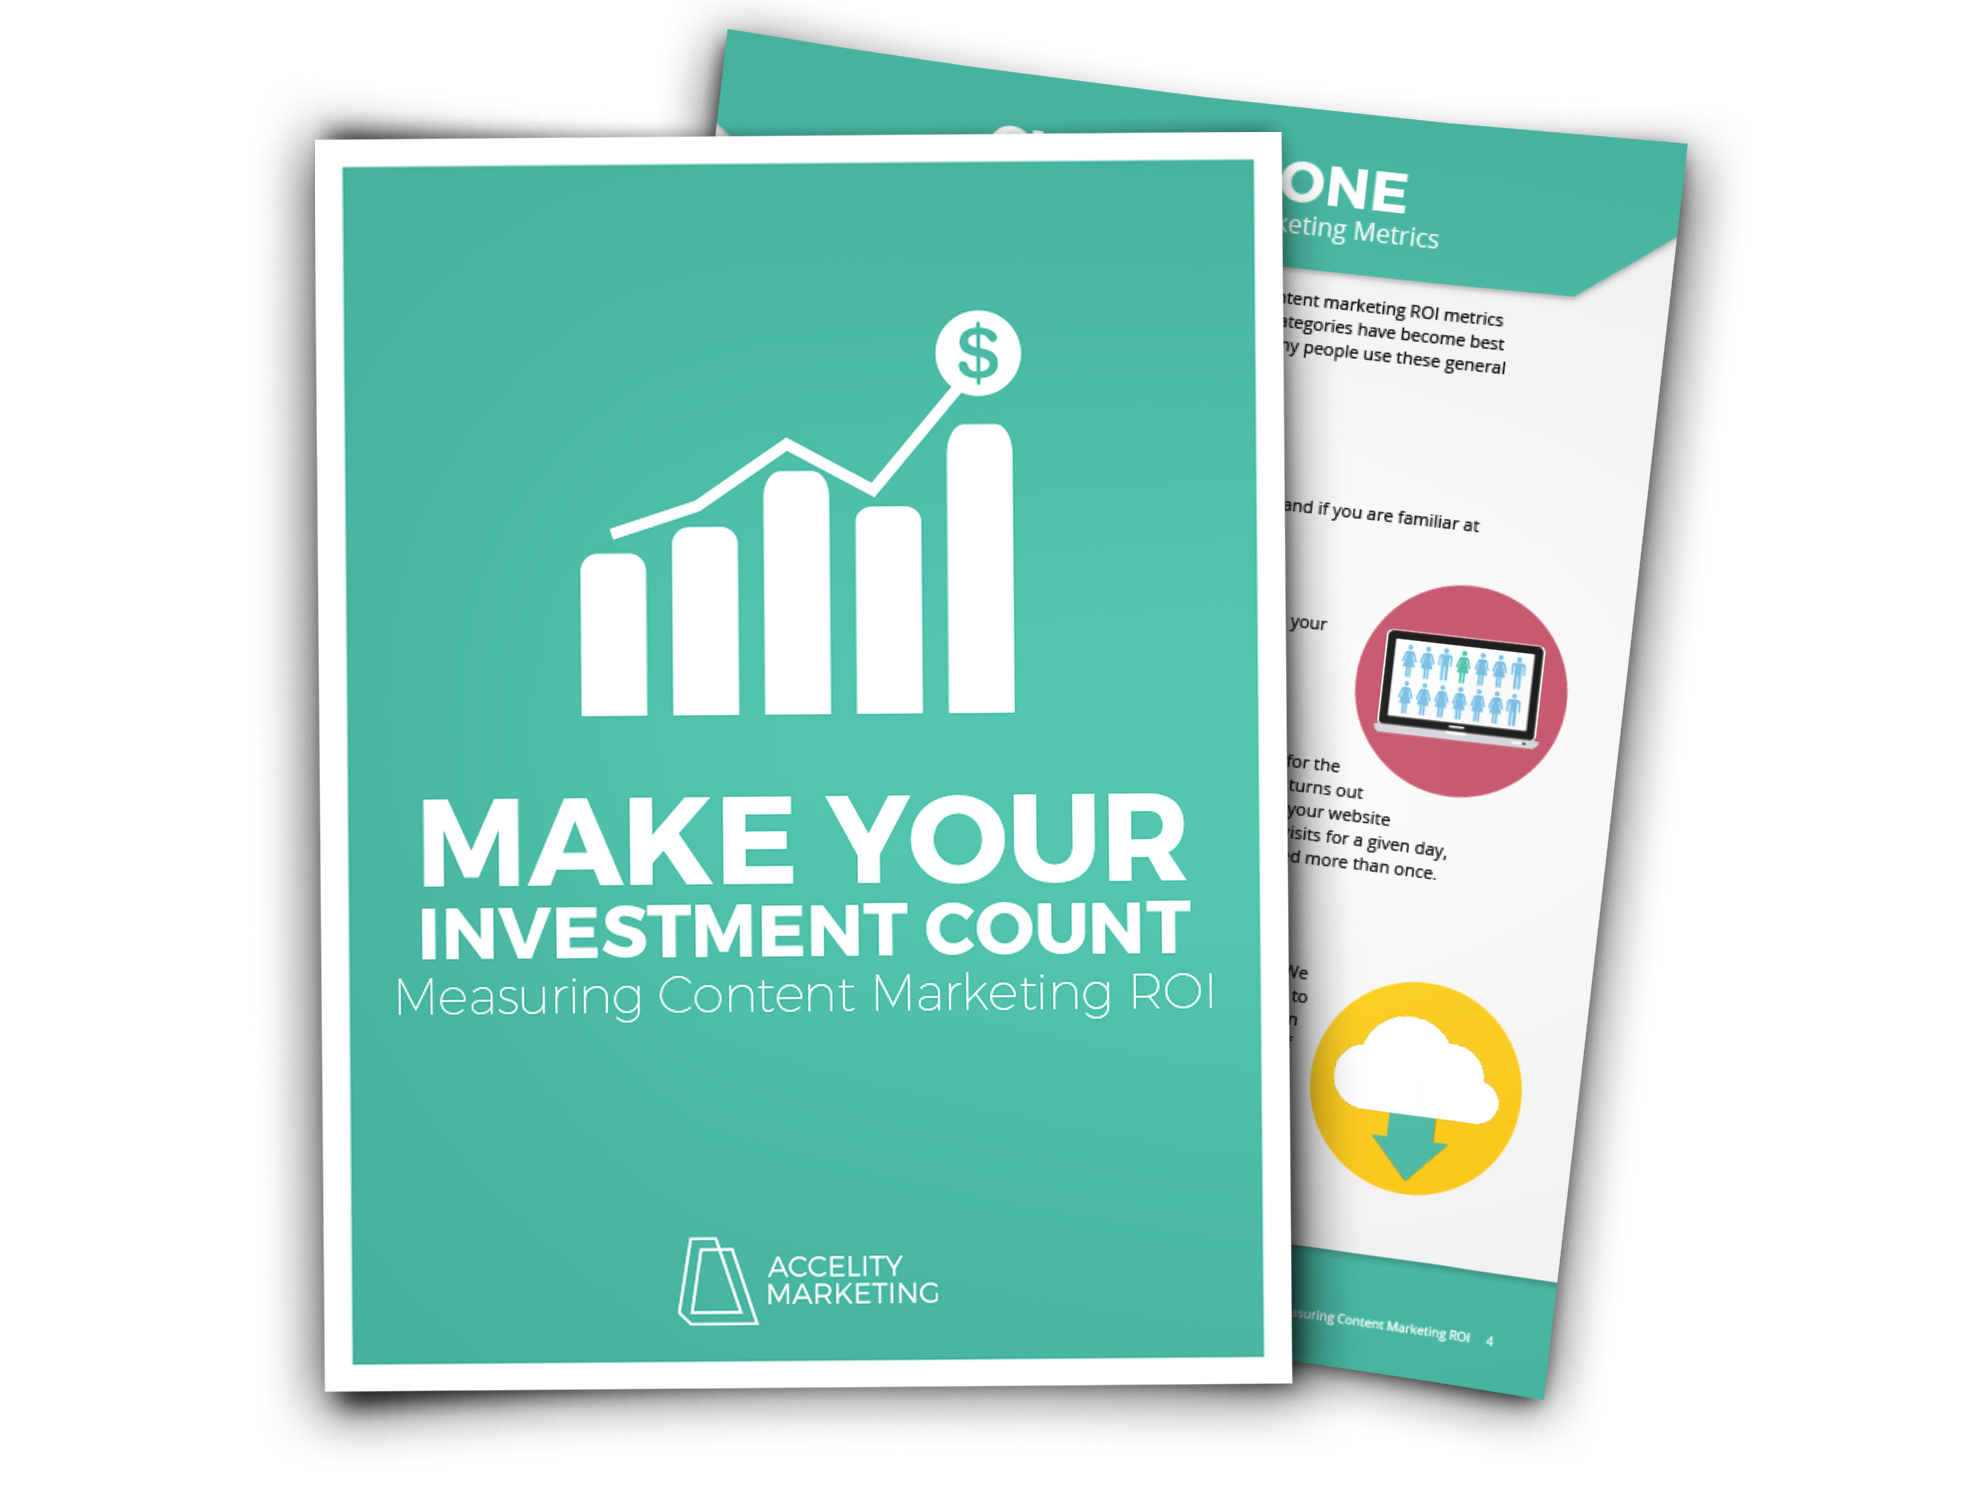 Make Your Marketing Investment Count: Measuring Content Marketing ROI